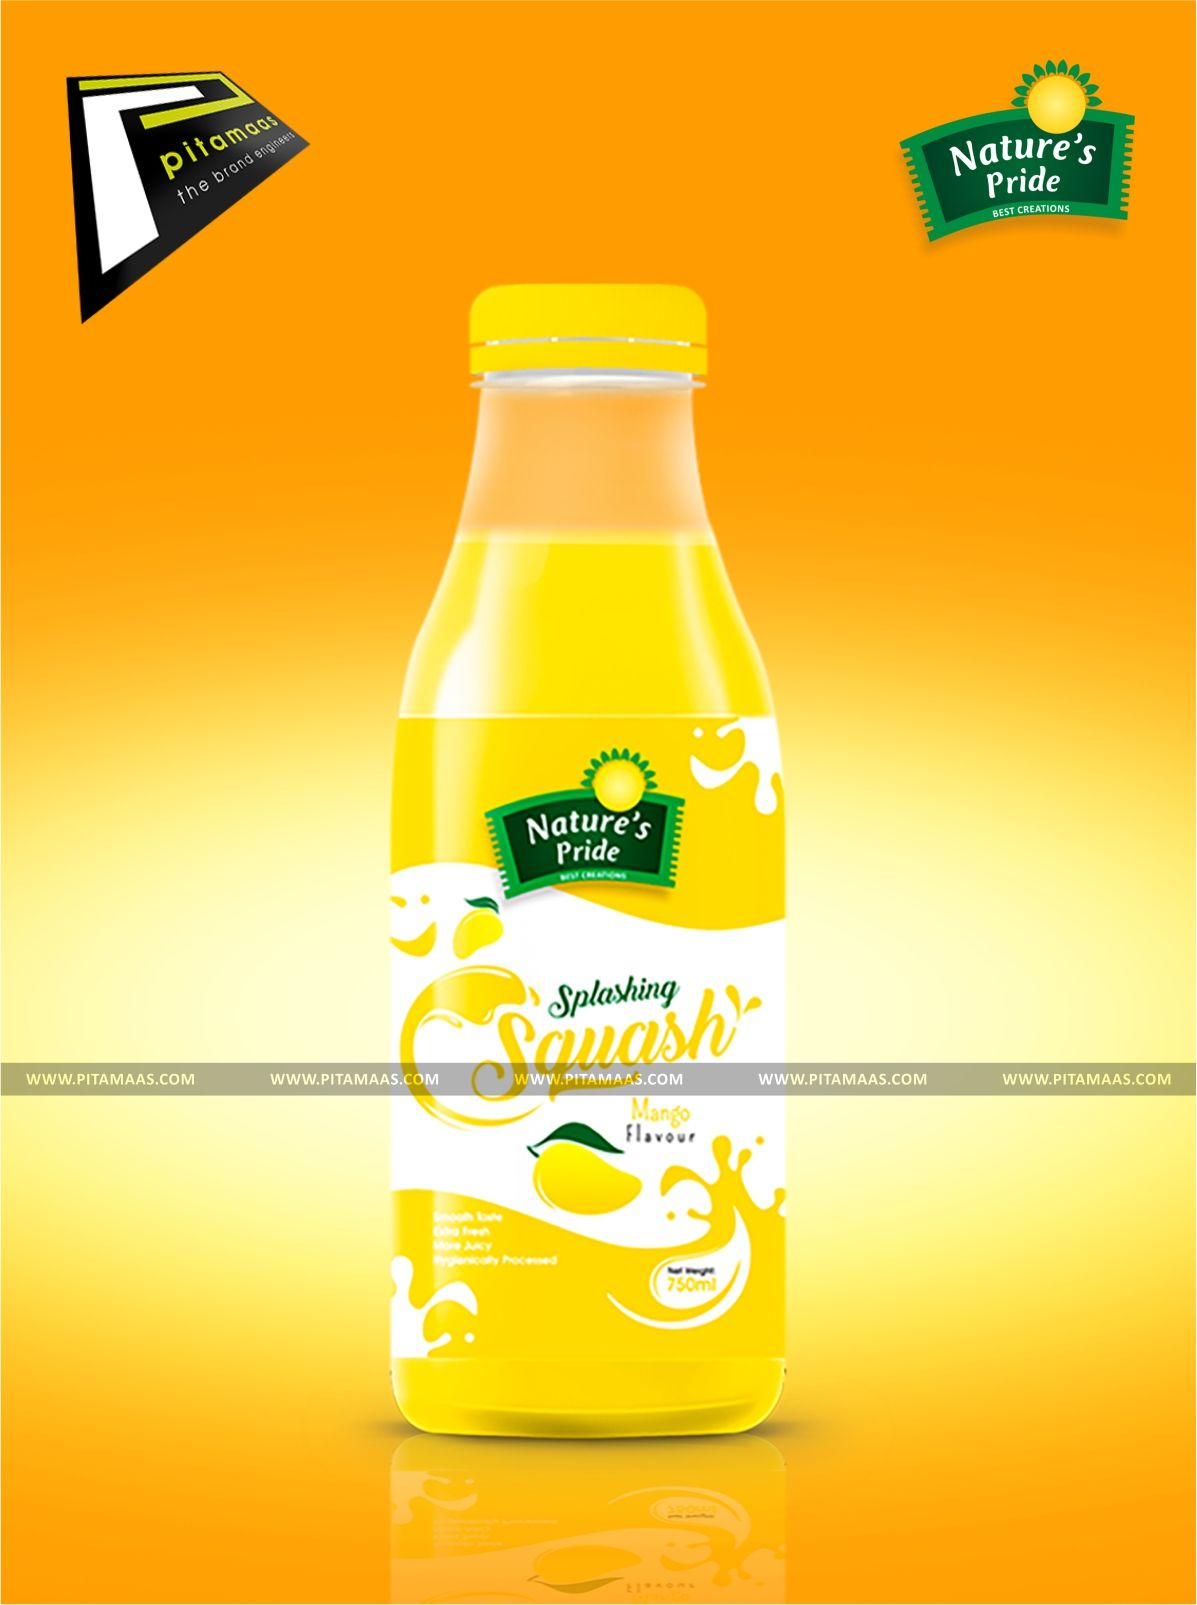 Punjab Best Product Packaging Design Company Pitamaas